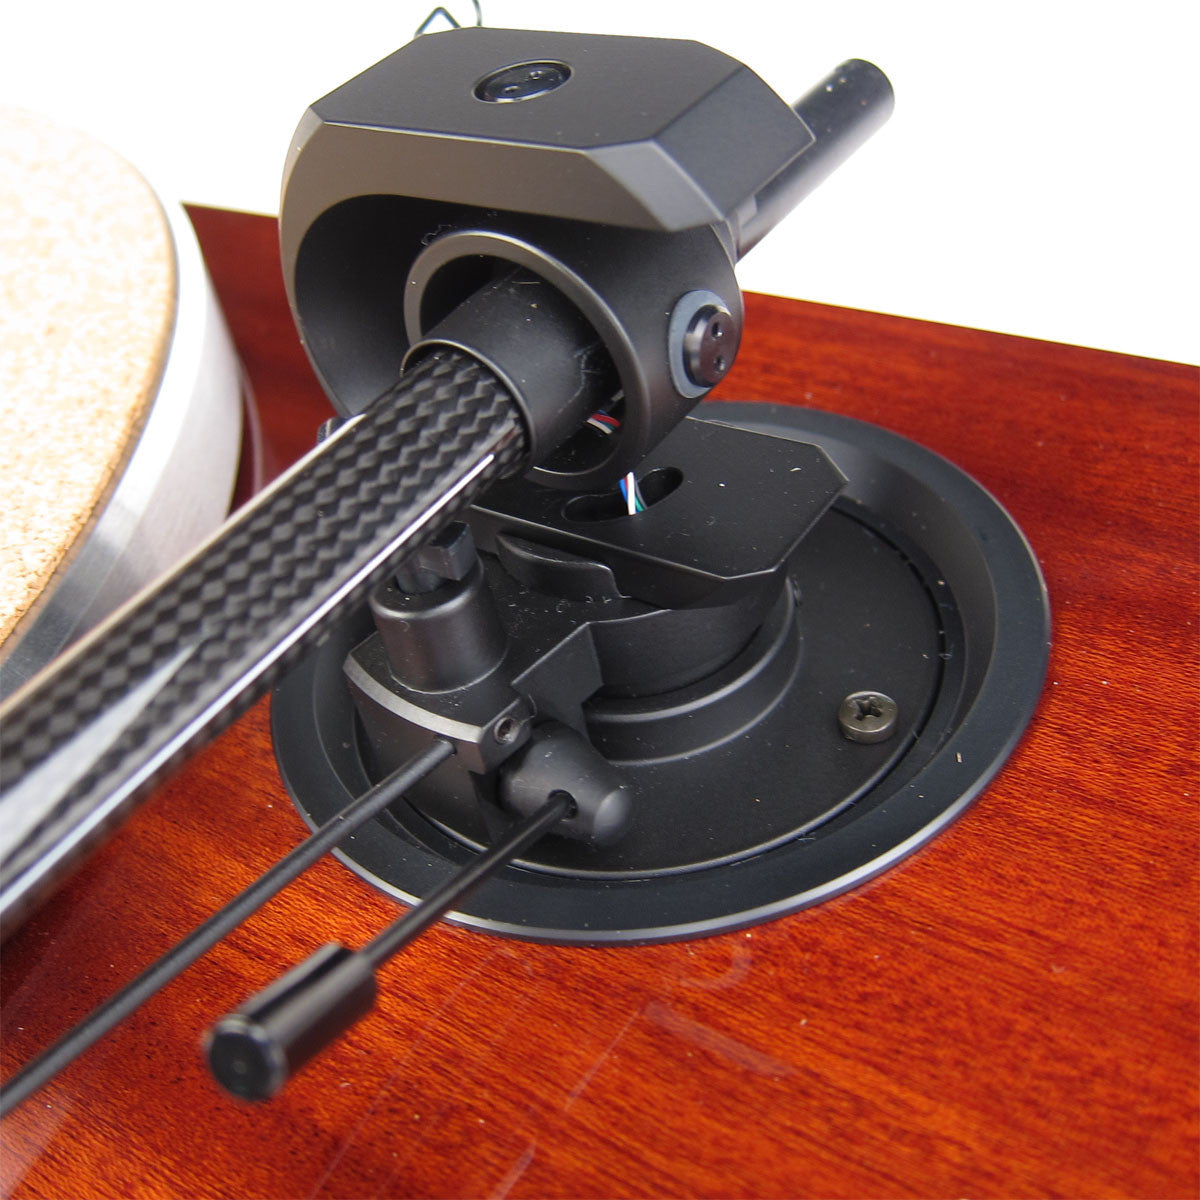 Pro-Ject: 1 Xpression Carbon Classic Turntable - Mahogany tone arm